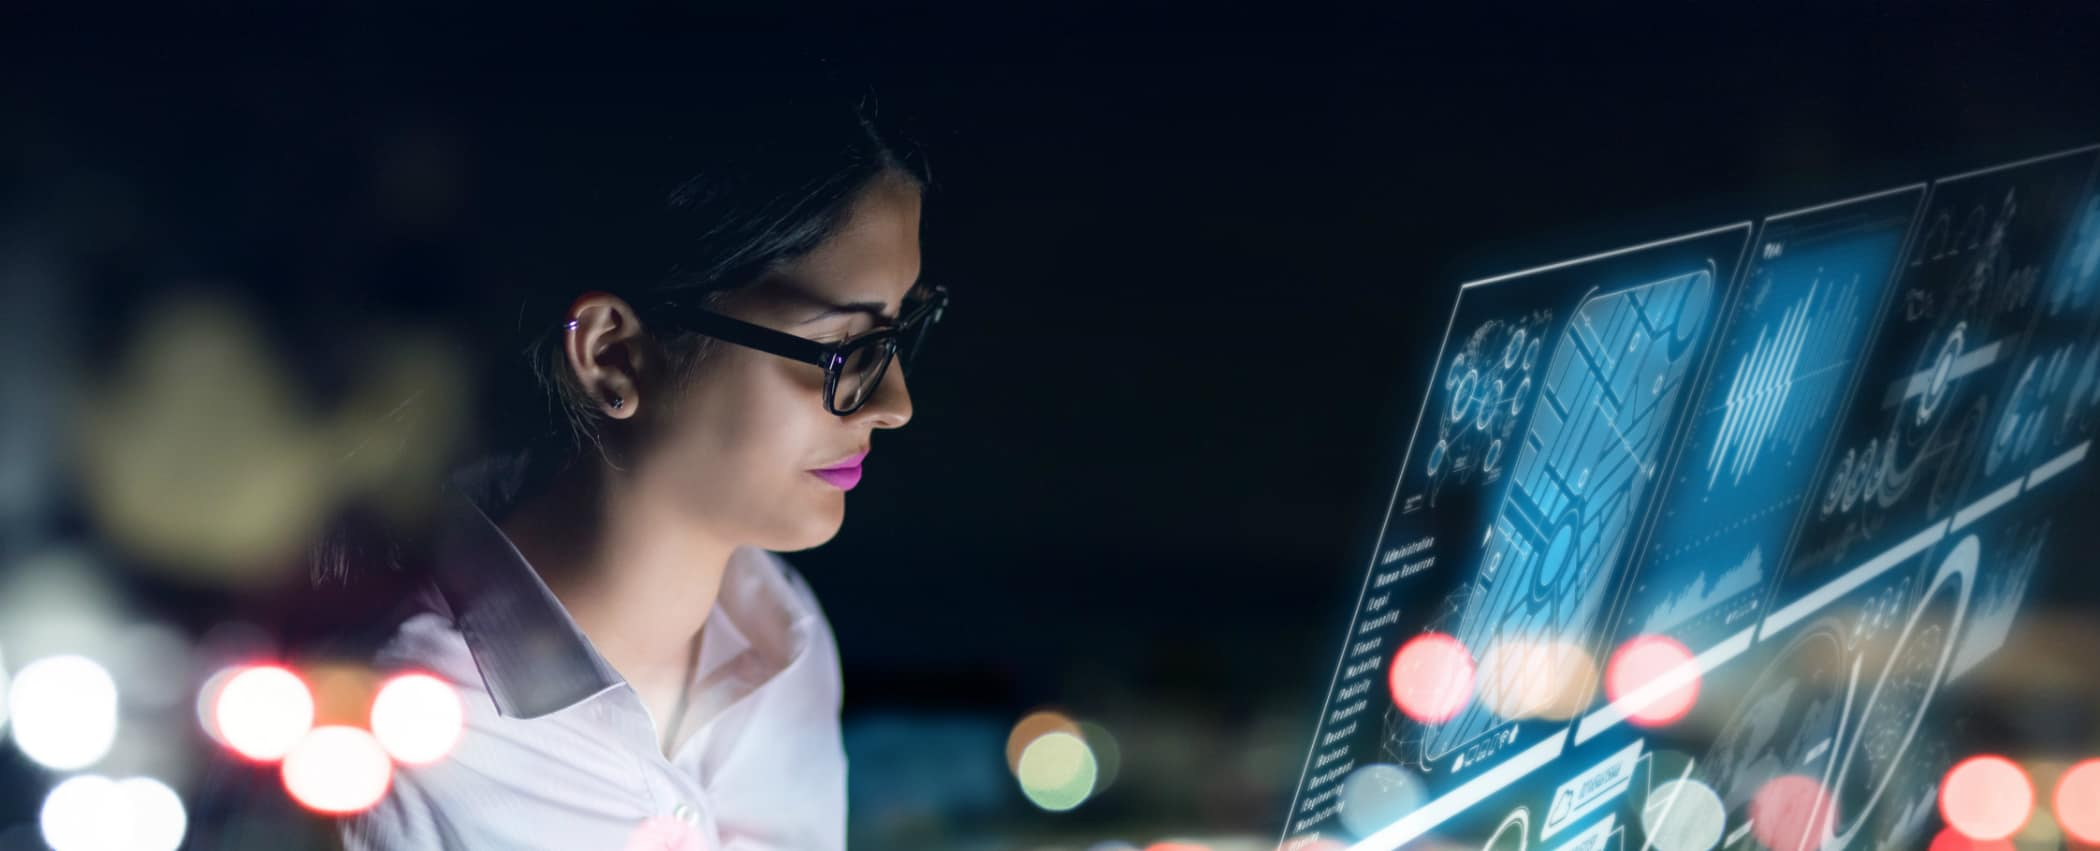 a woman stares at a computer screen